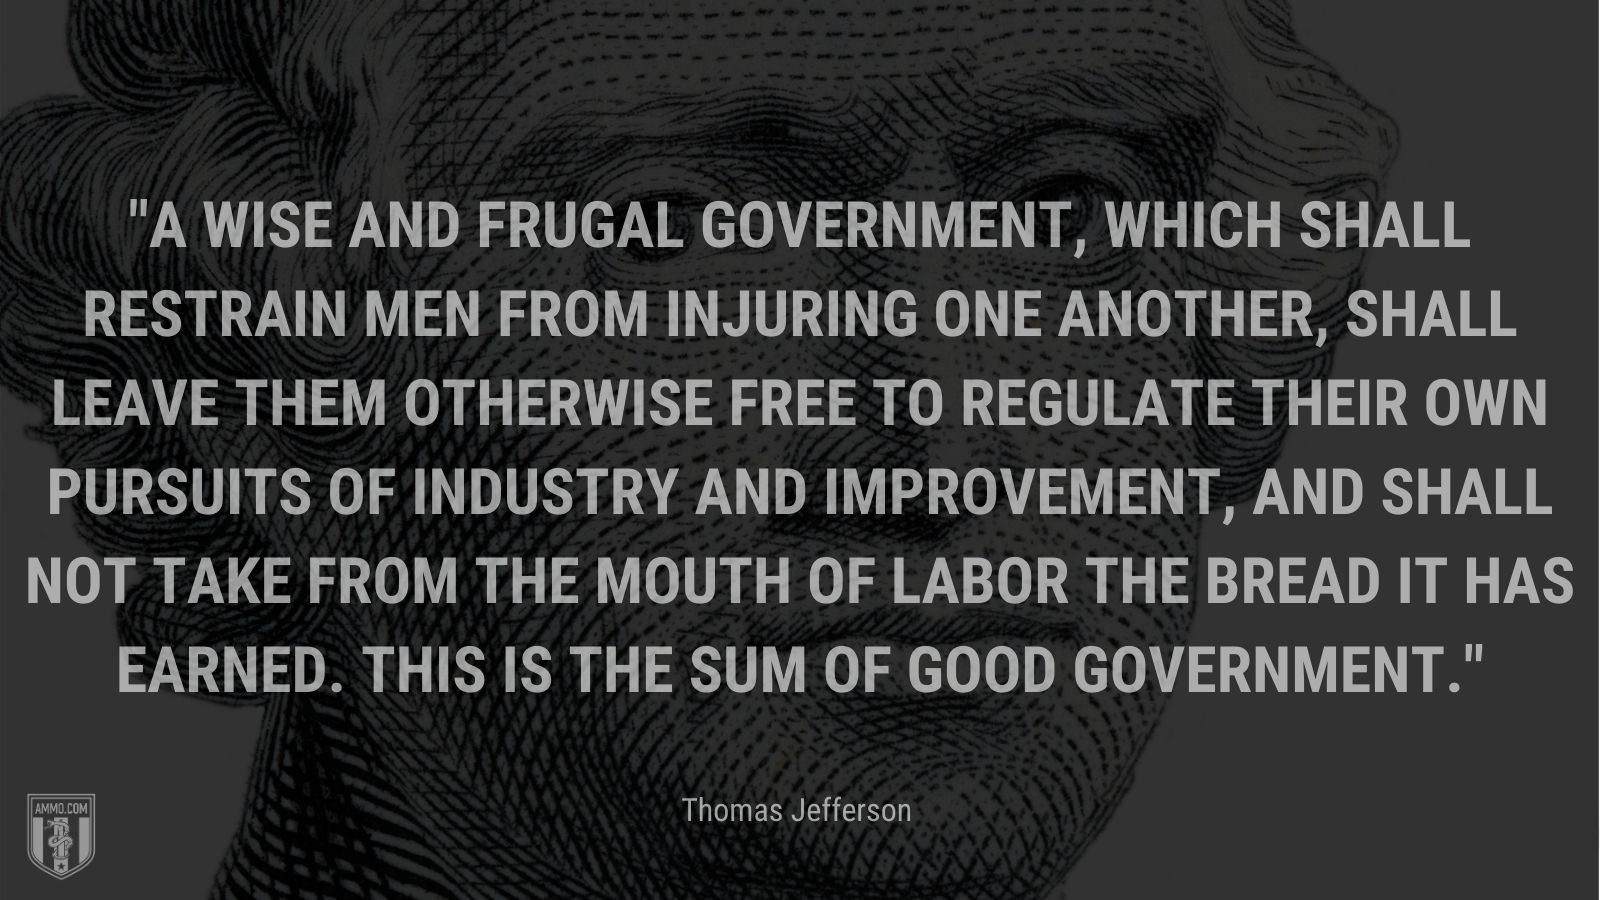 """""""A wise and frugal Government, which shall restrain men from injuring one another, shall leave them otherwise free to regulate their own pursuits of industry and improvement, and shall not take from the mouth of labor the bread it has earned. This is the sum of good government."""" - Thomas Jefferson"""